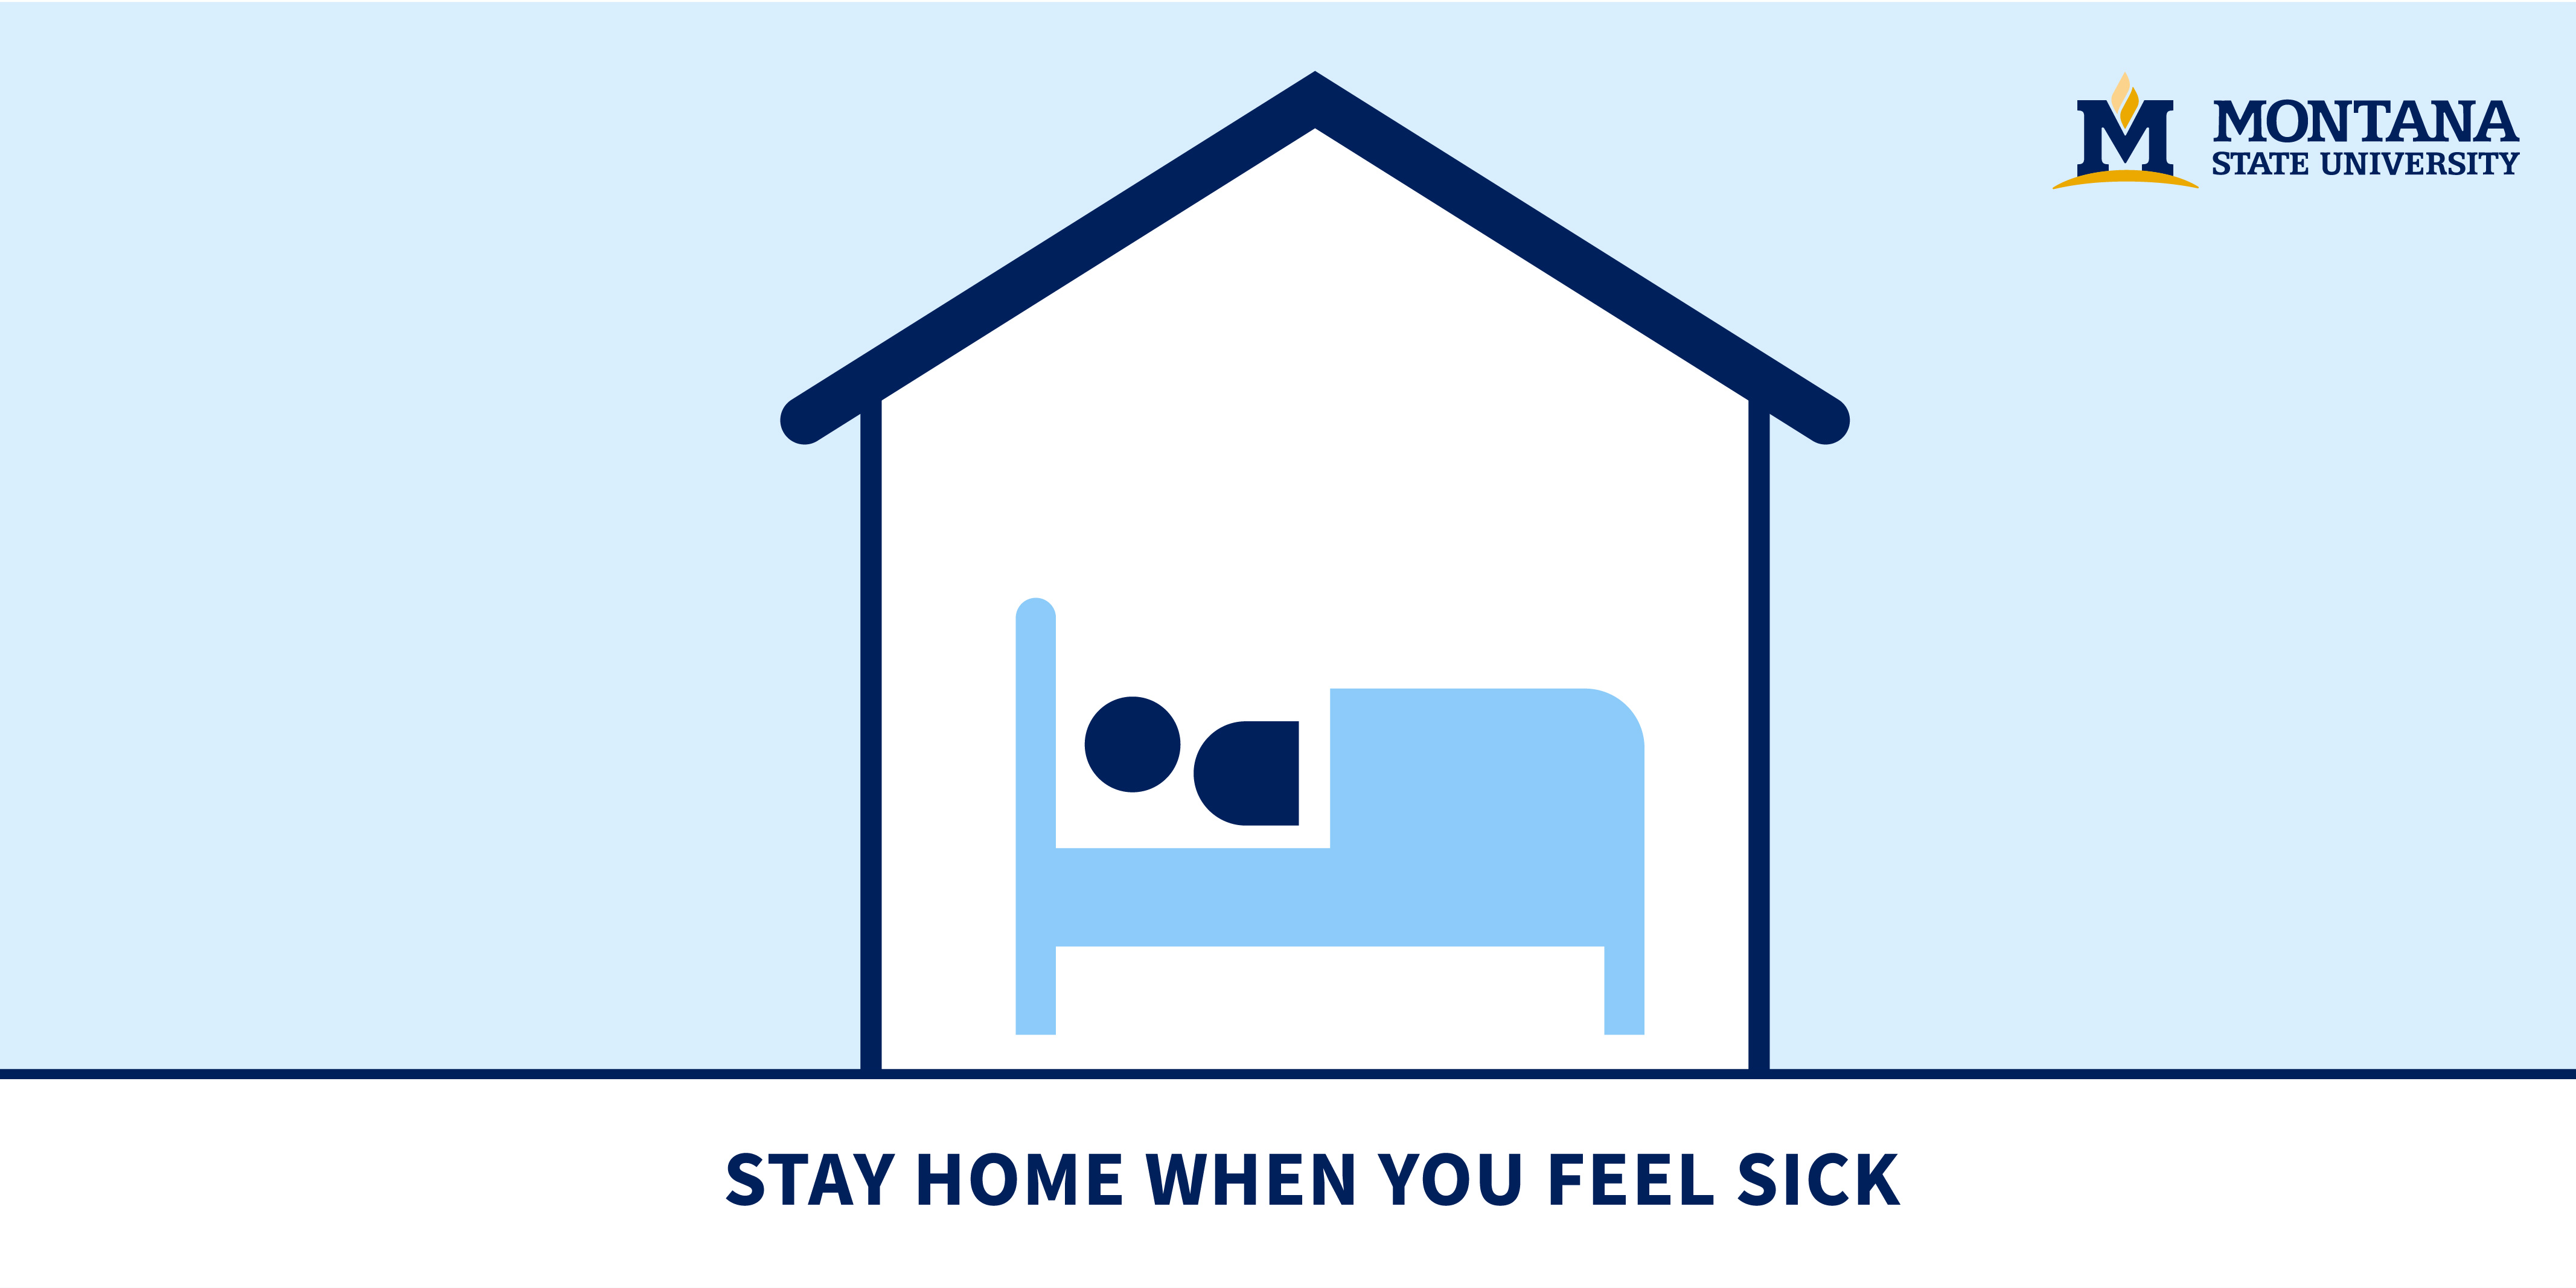 Stay Home When You Feel Sick